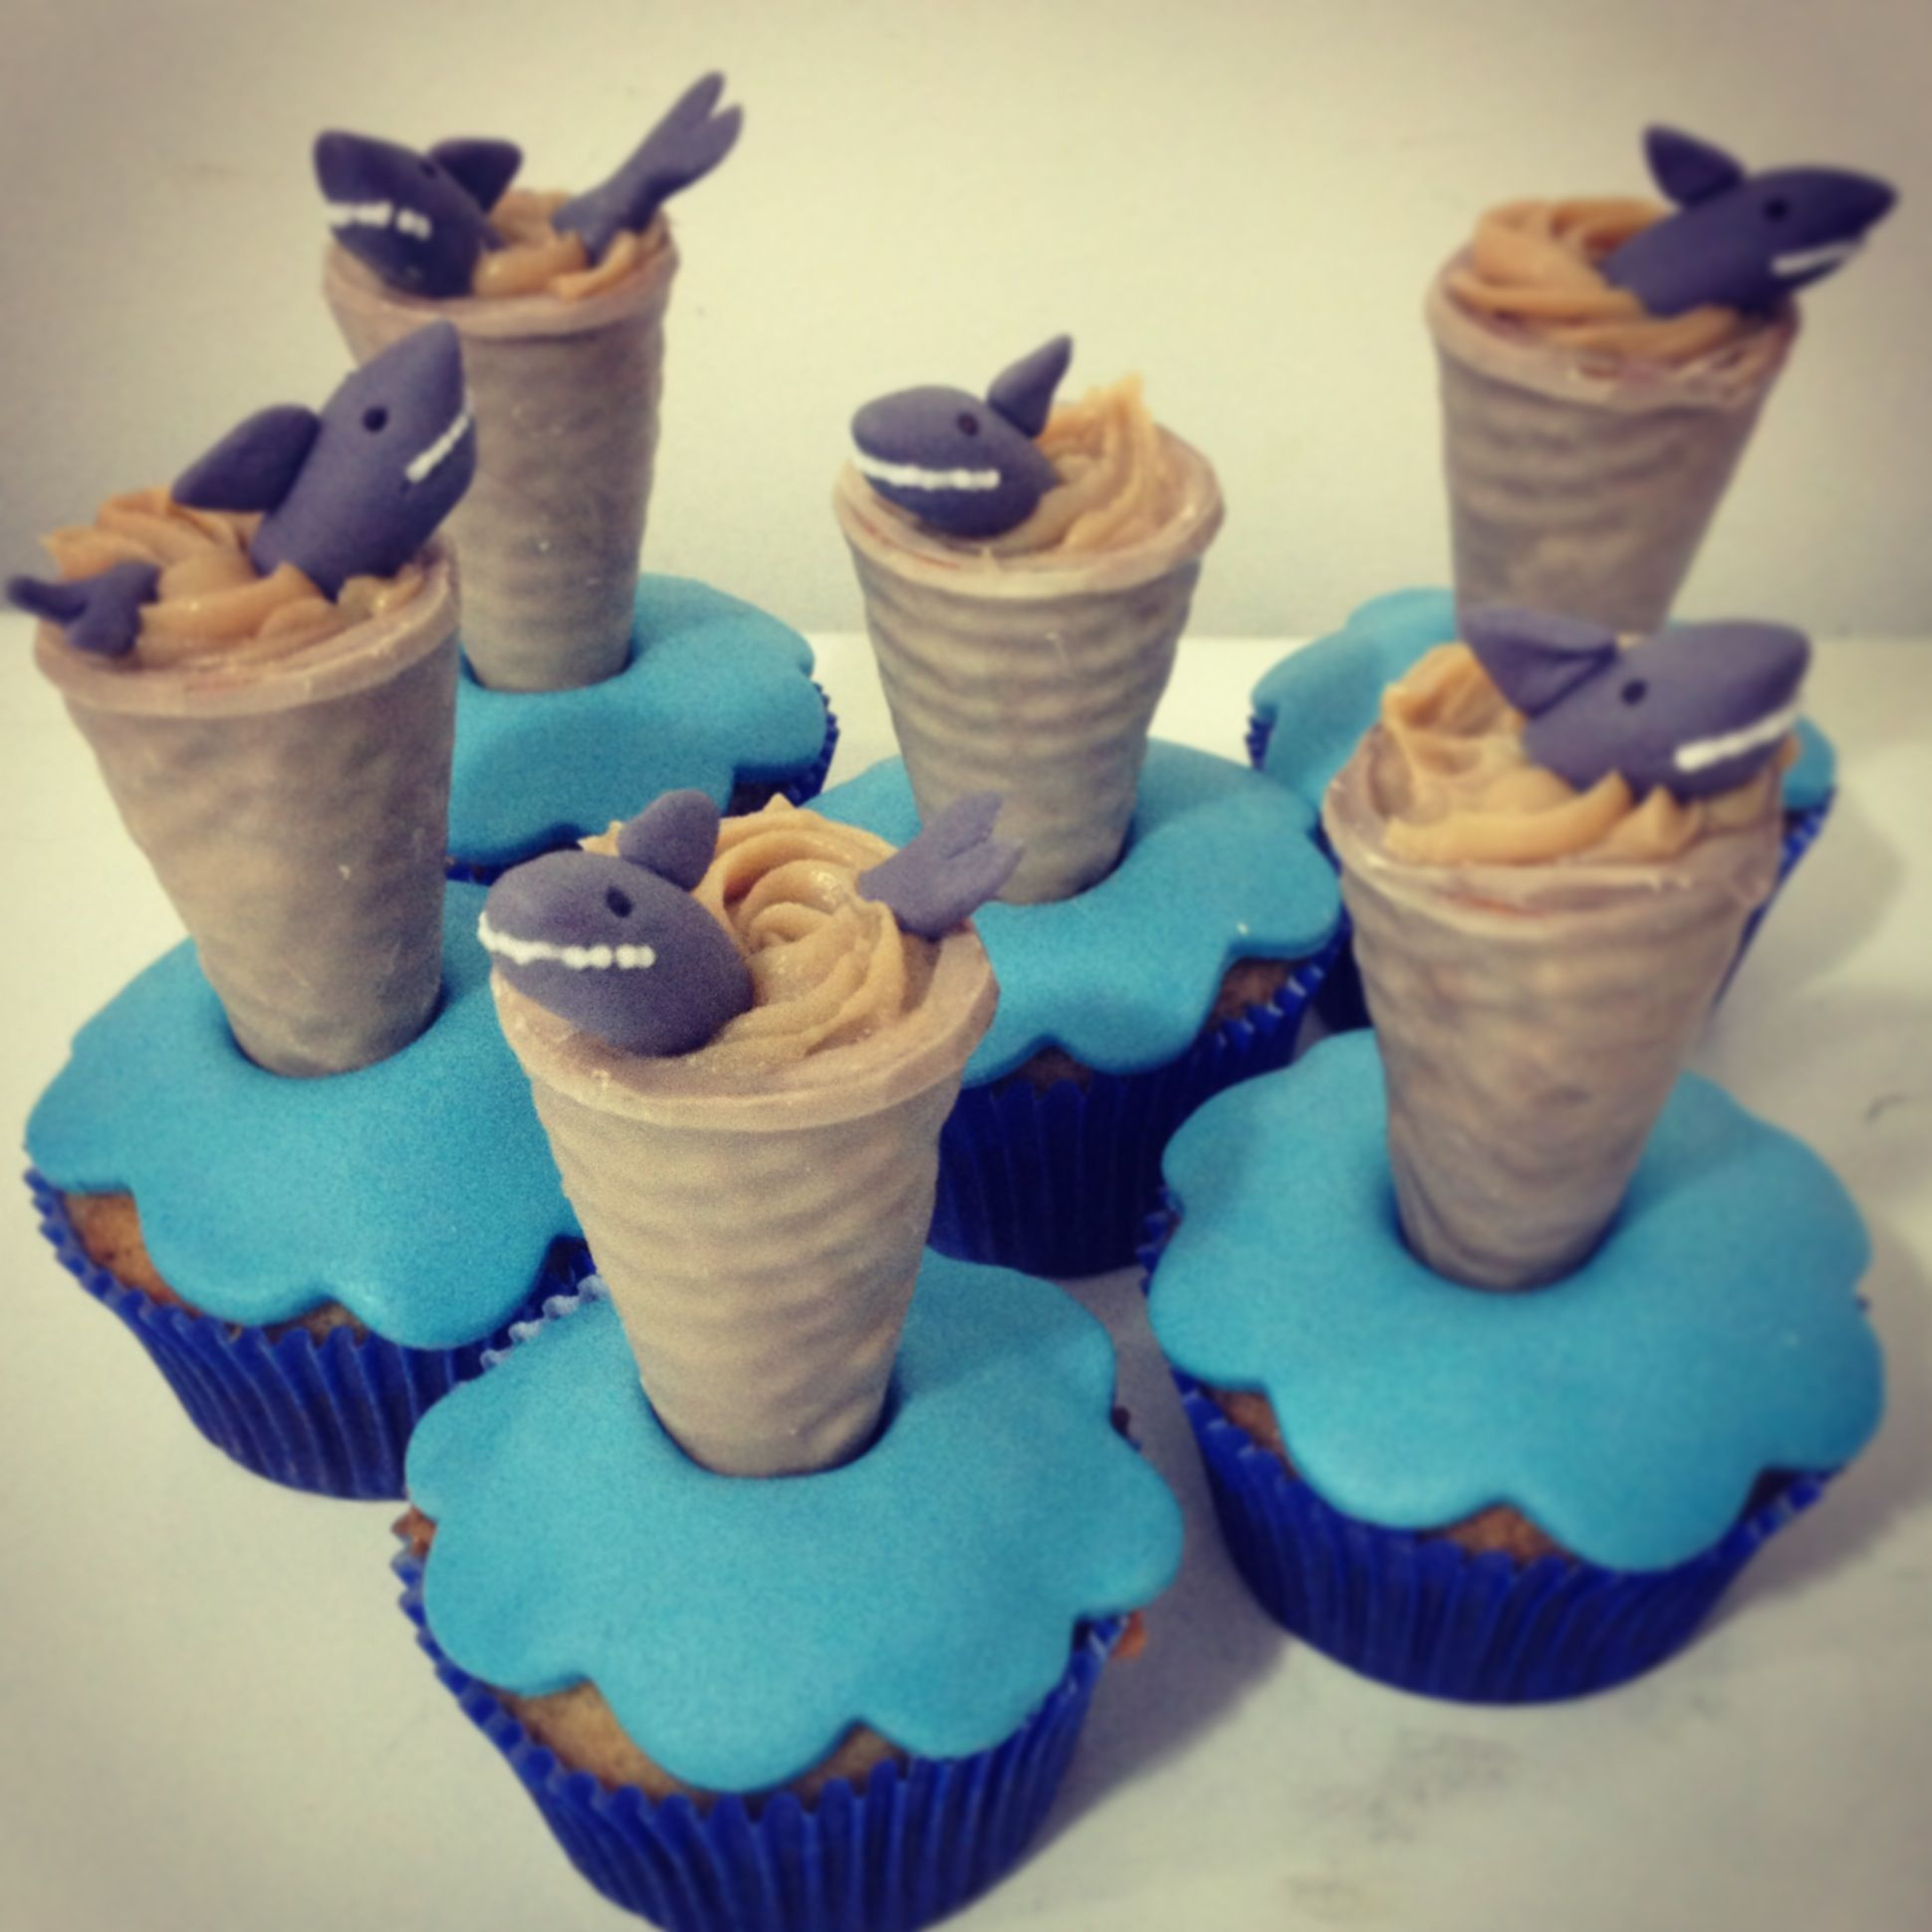 Sharknado Cupcakes Must Figure Out How To Reverse Engineer These